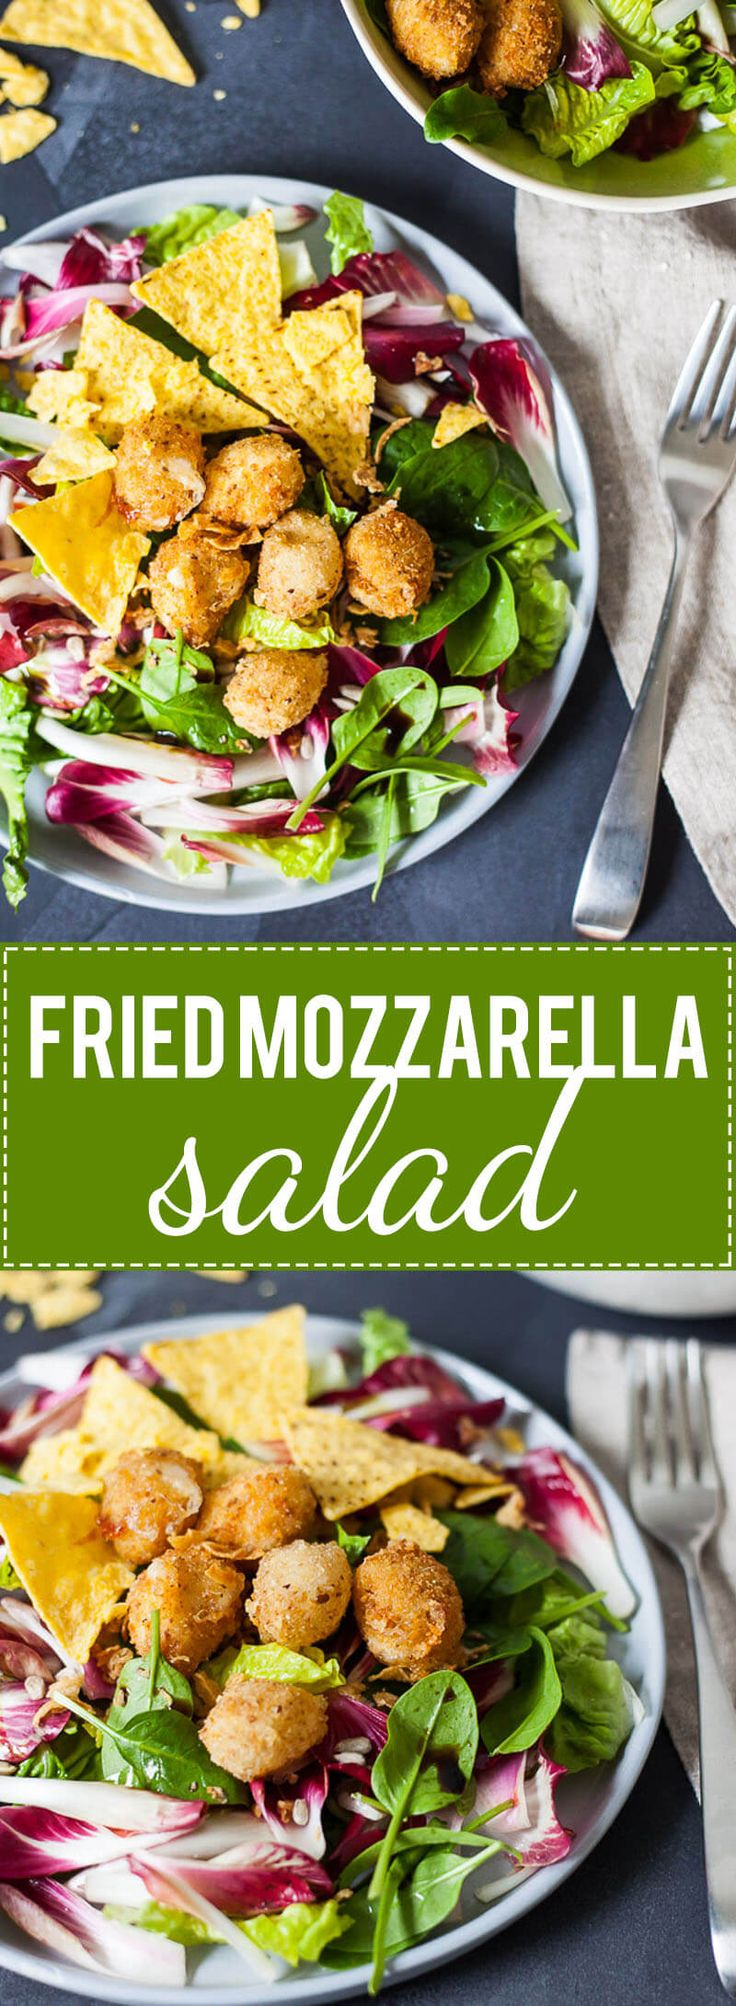 This Fried Mozzarella Salad is perfect when you want to eat healthy, but still, crave something cheesy and fried. | www.vibrantplate.com